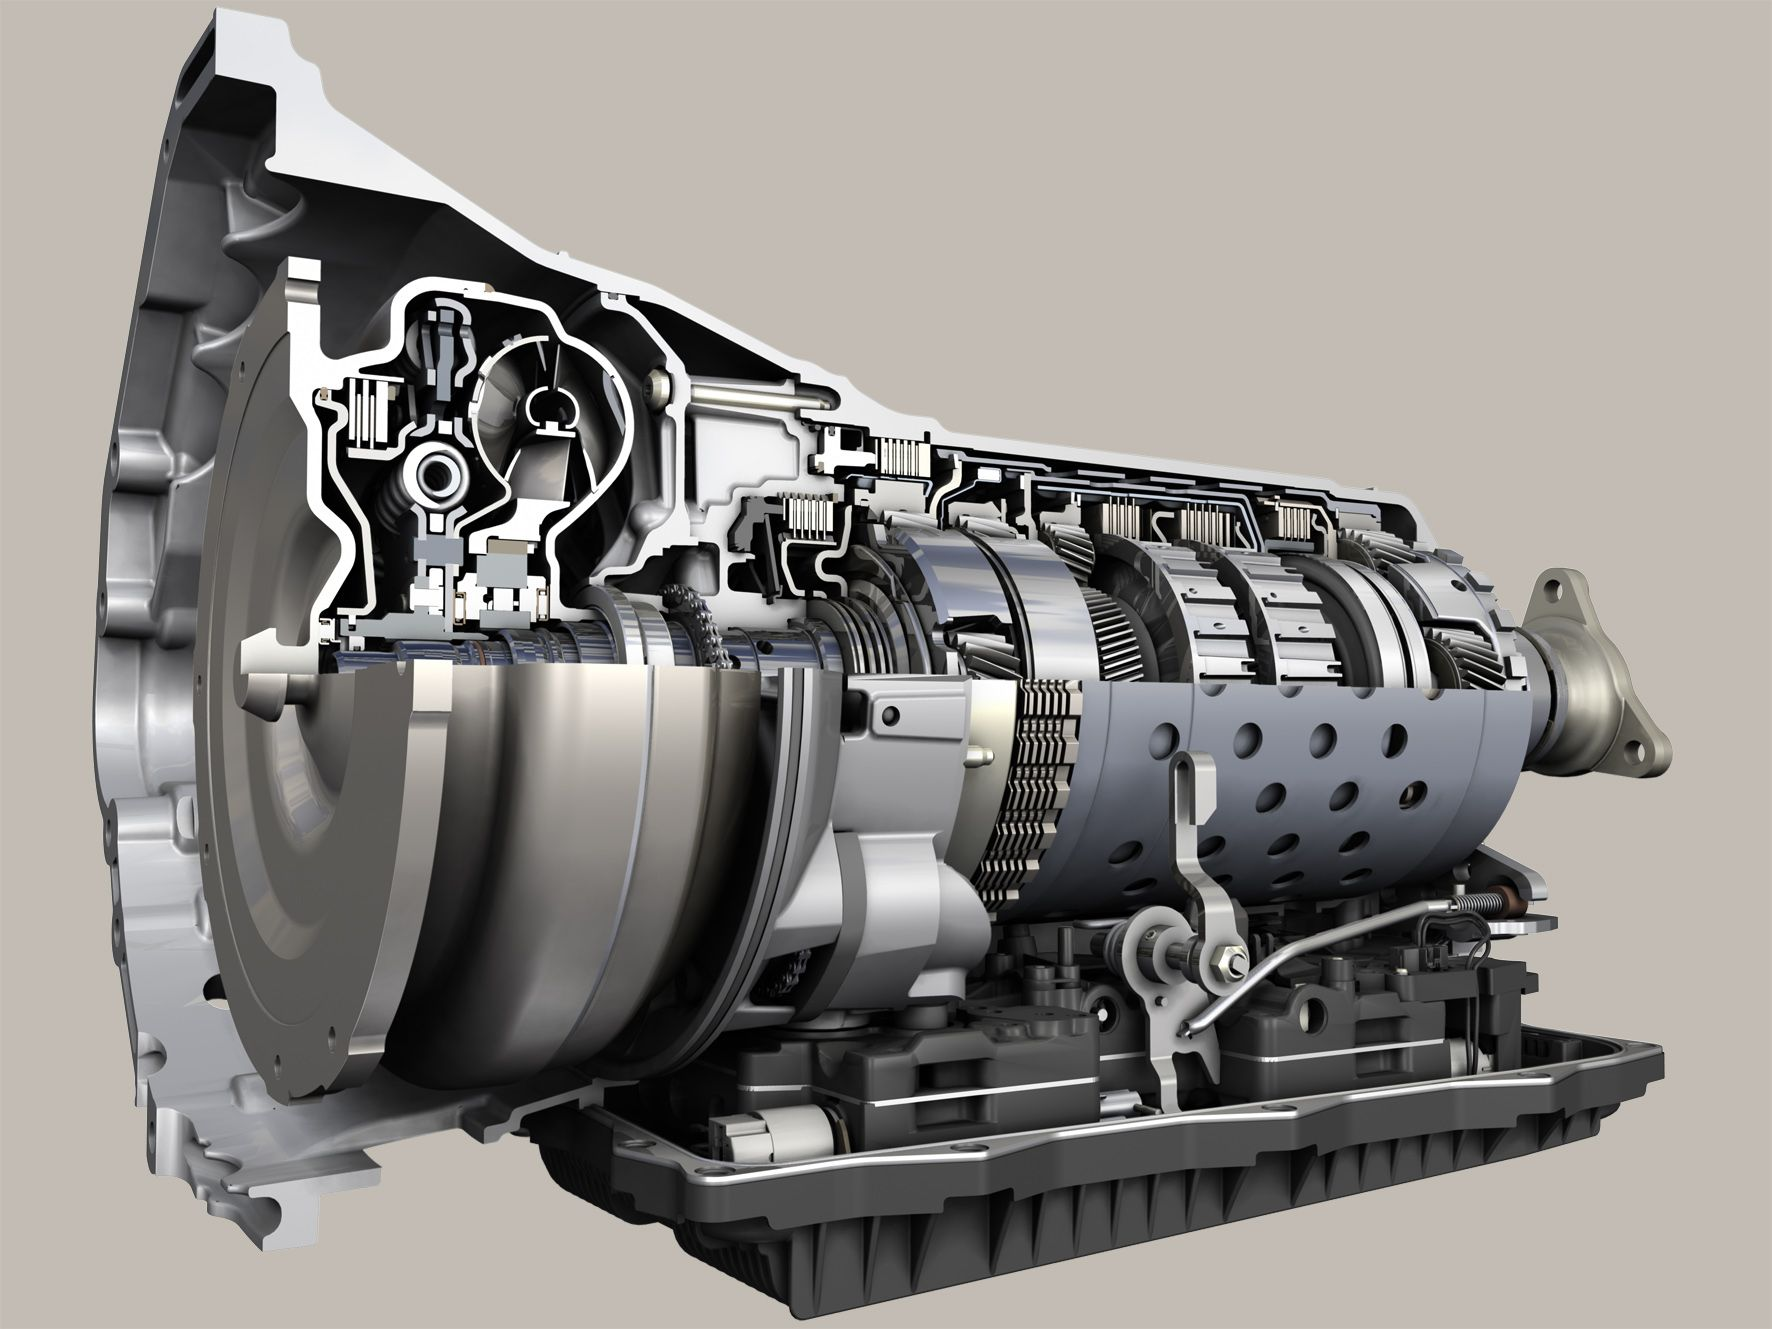 Bmw 760i With Zf 8 Speed Automatic Gearbox In 2020 Engines For